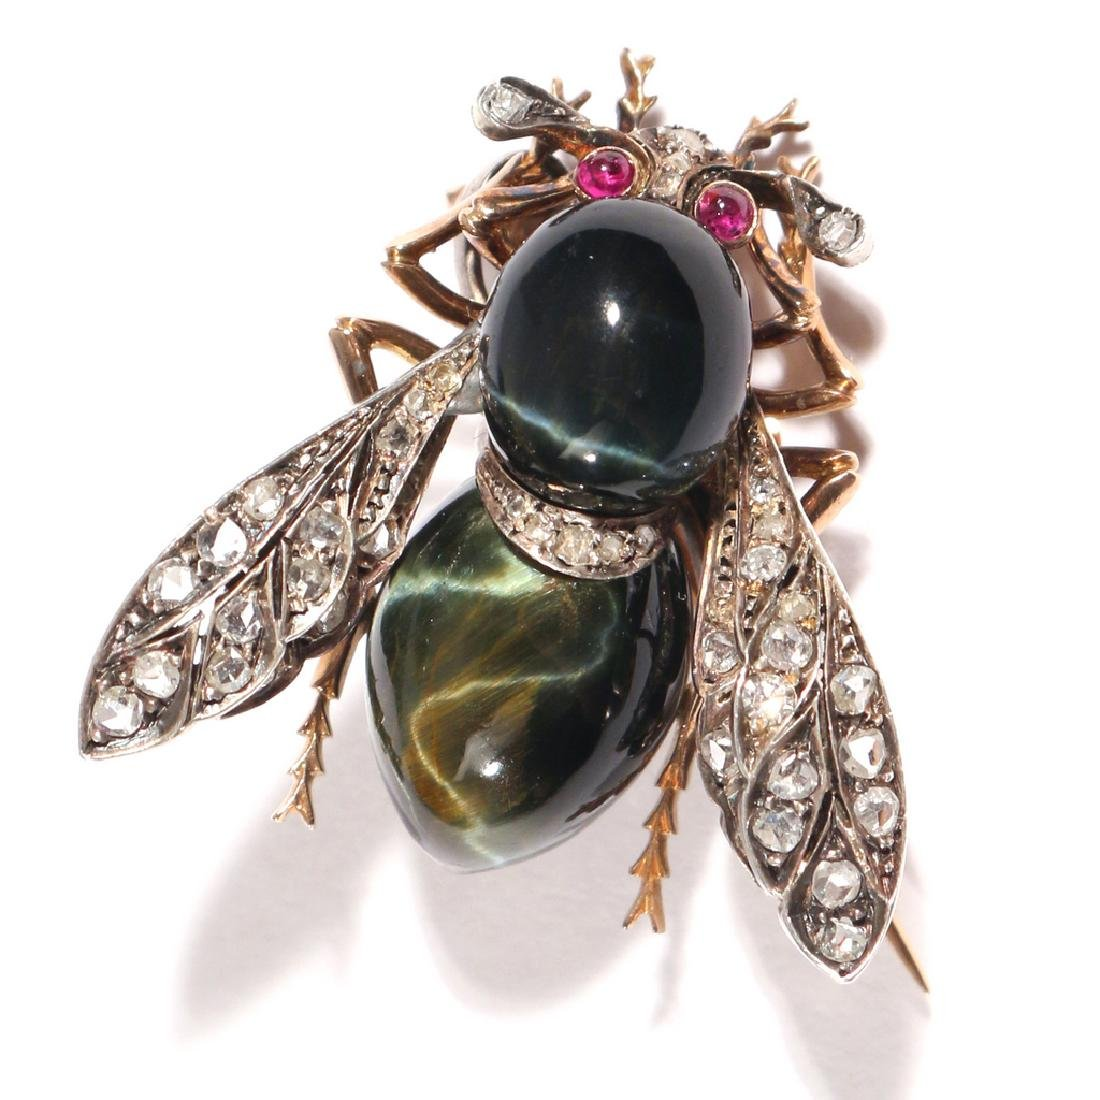 PHENOMENAL FRENCH NAPOLEONIC BEE PENDANT PIN